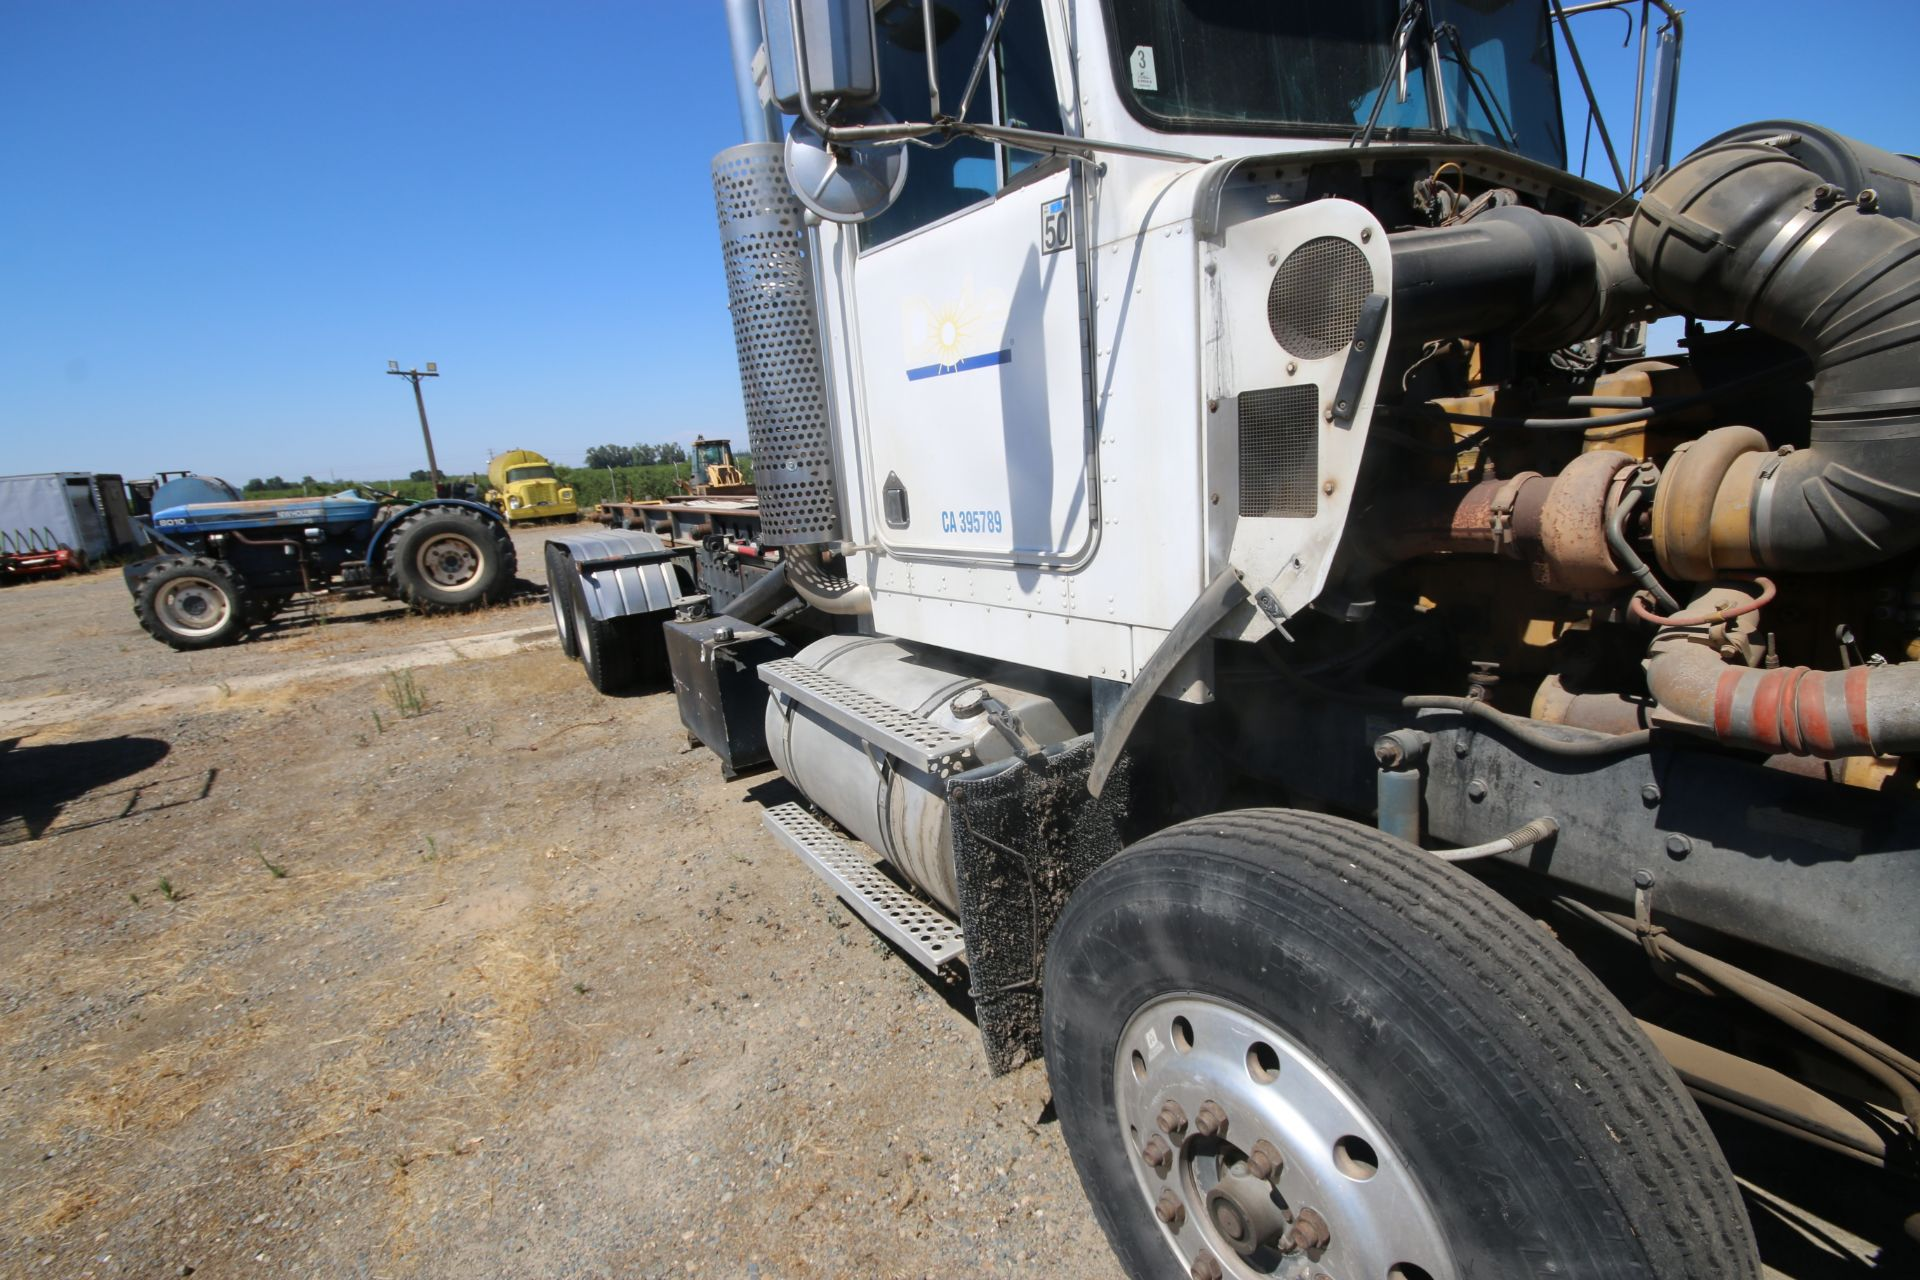 1996 Kenworth 3-Axle Roll-Off Straight Truck, VIN #: 1XKDDB9XOTS687107, with 24,722 Miles, License - Image 25 of 30